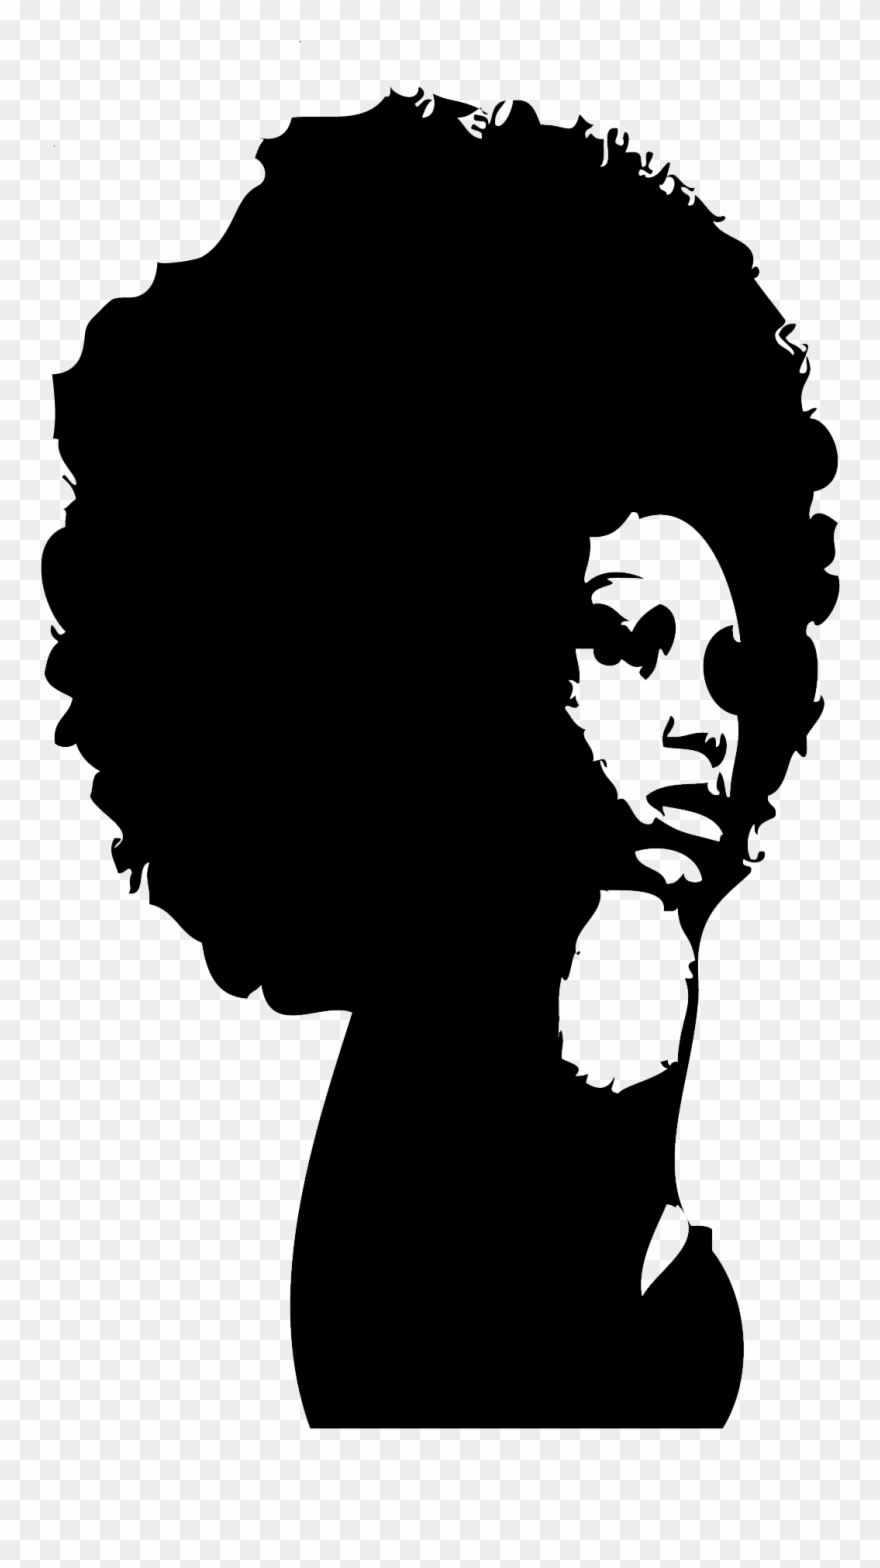 Female face silhouette clipart jpg download Popular Images - Black Woman Face Silhouette Clipart (#498388 ... jpg download